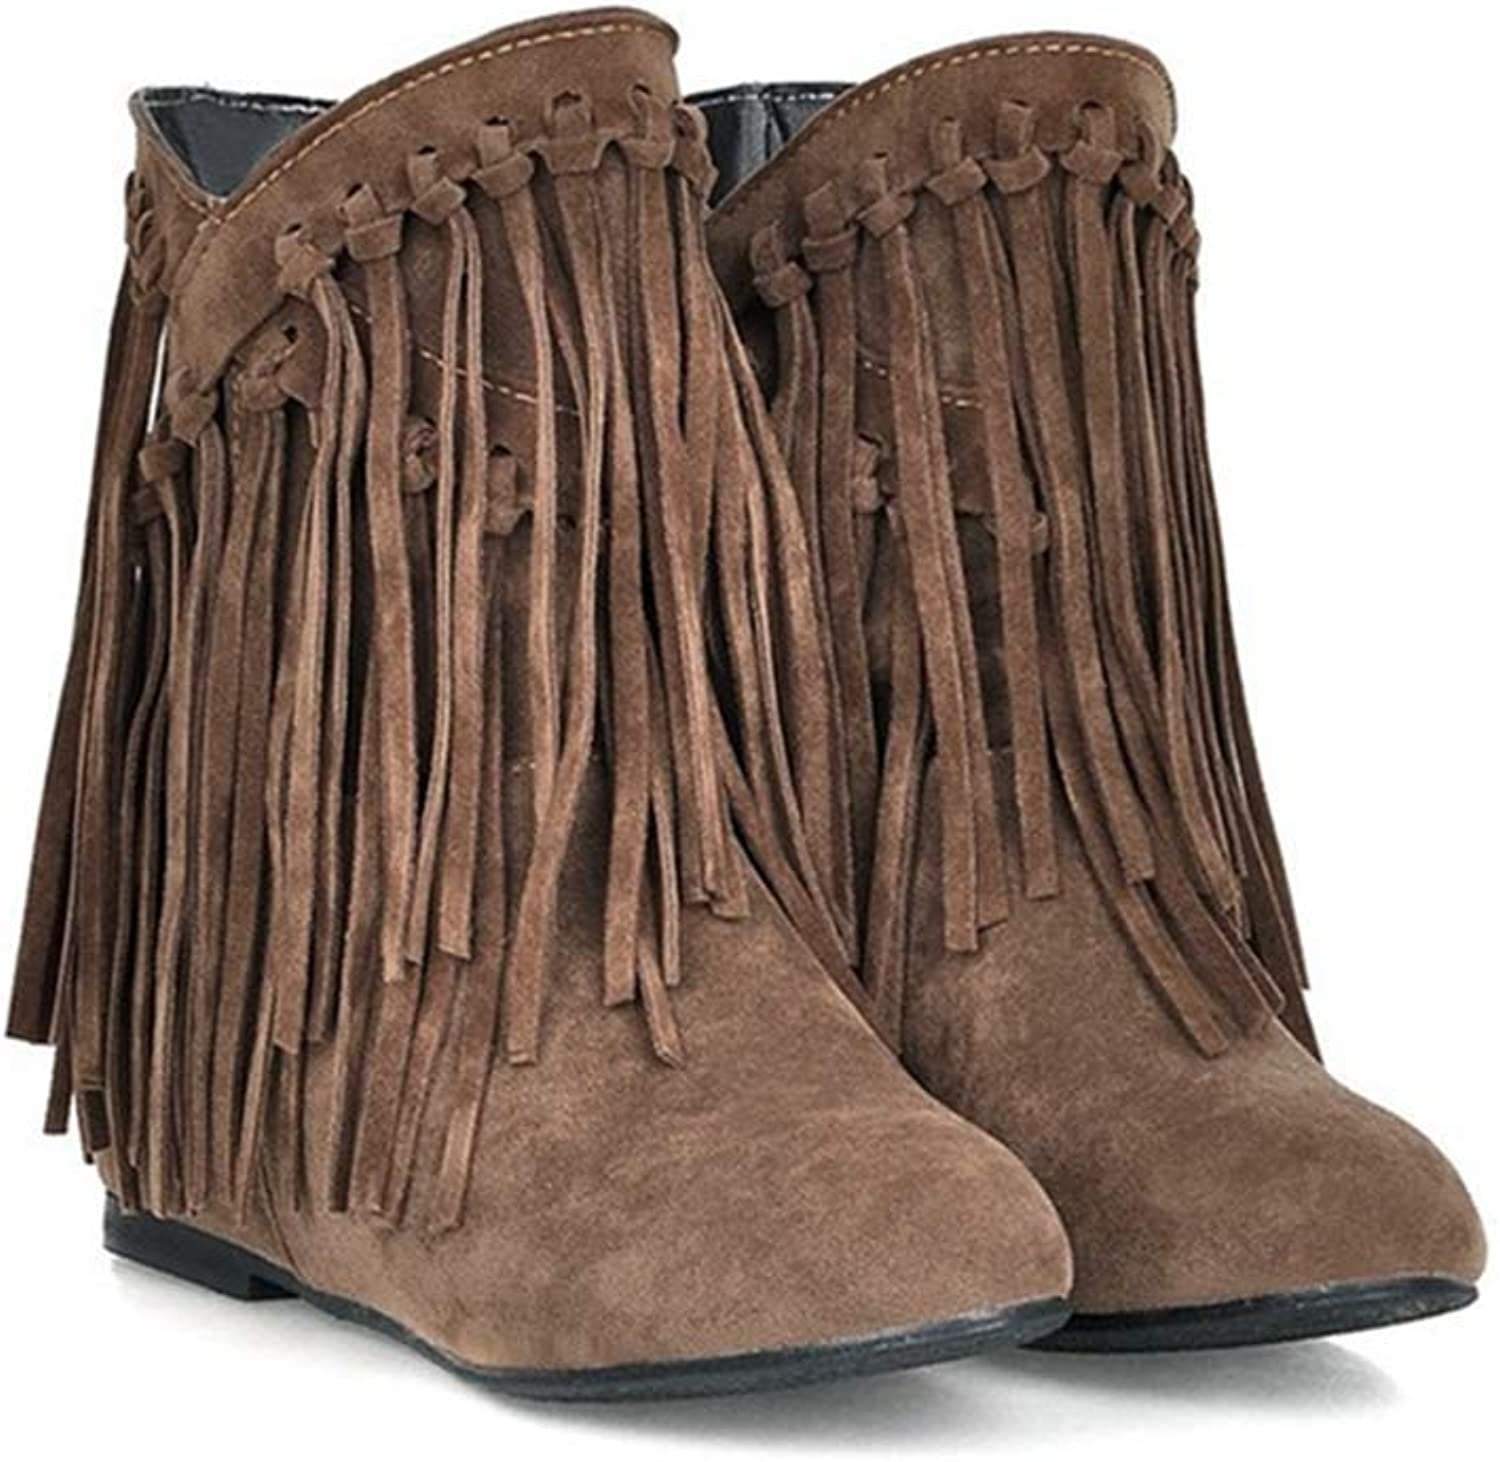 Beautiful - Fashion Women's Winter Suede Fringed Ankle Boots Fashion Low Wedge Heel Booties Tassels Dressy Short Boots